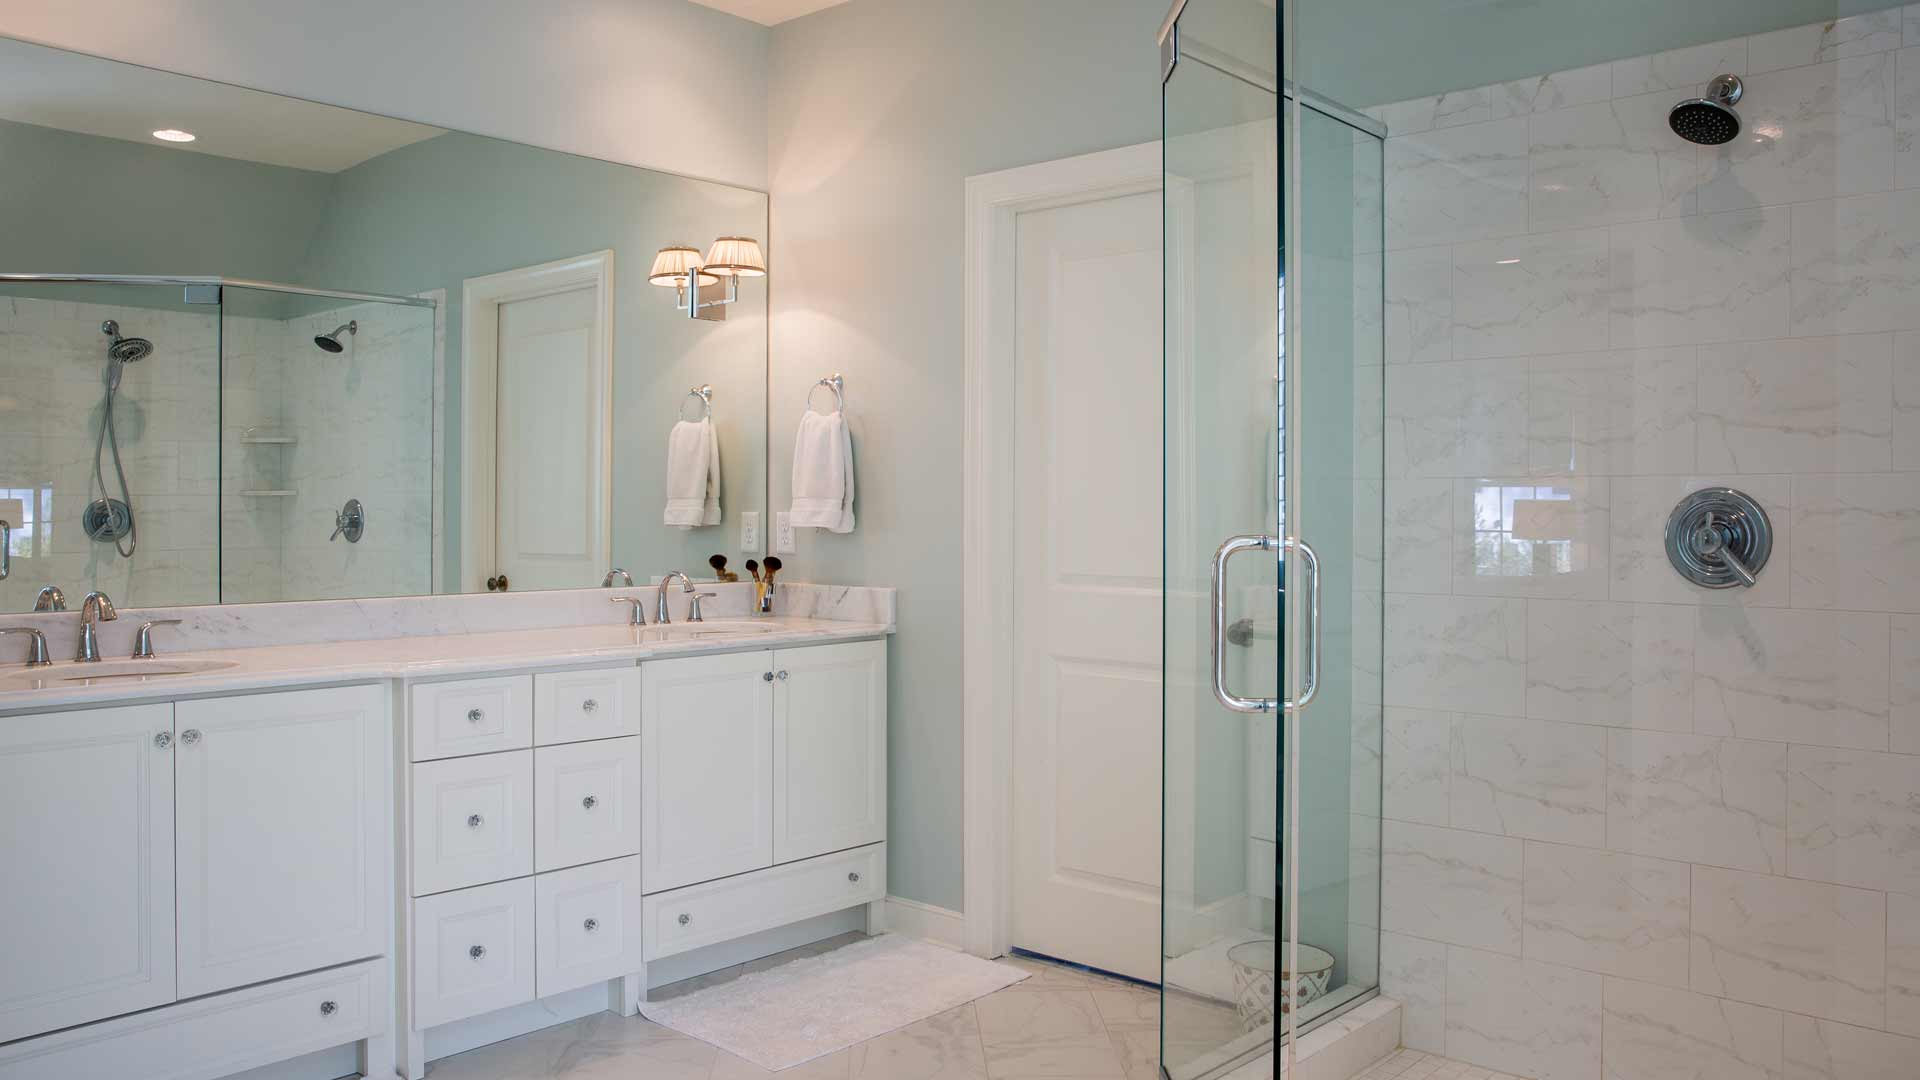 The Kittrell Company Bathroom Design